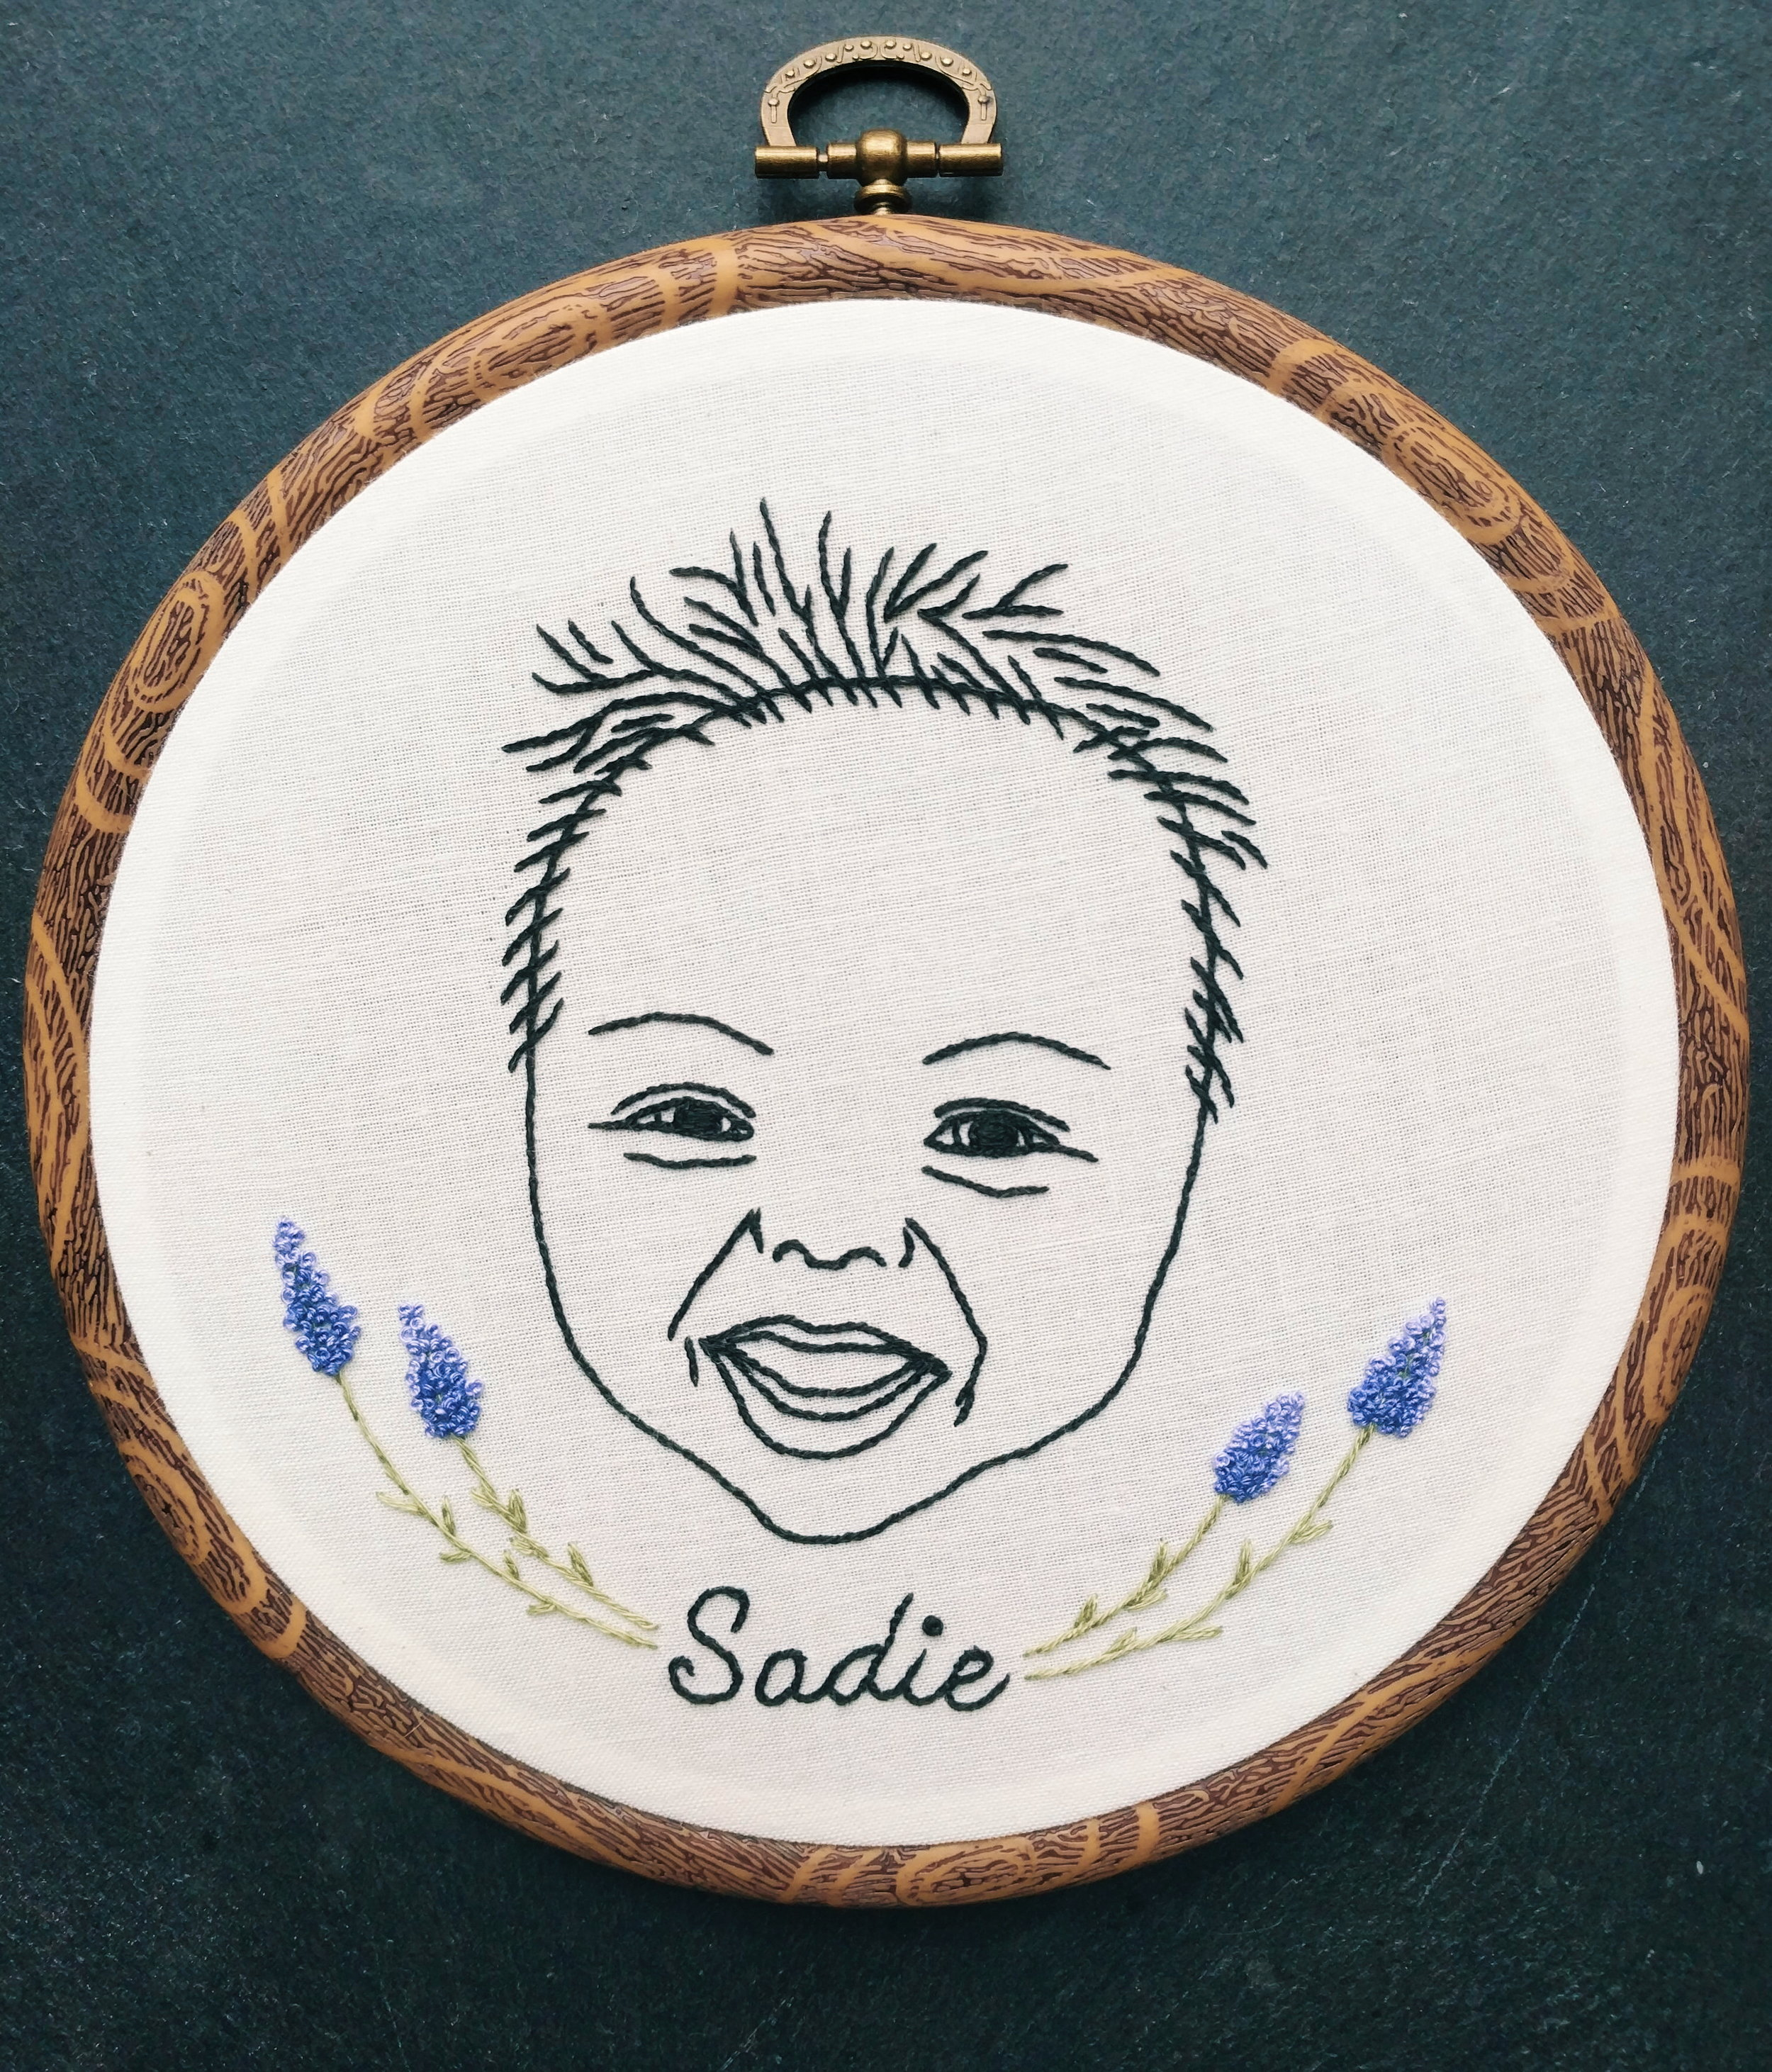 Baby Sadie- an outlined portrait and my first commissioned project